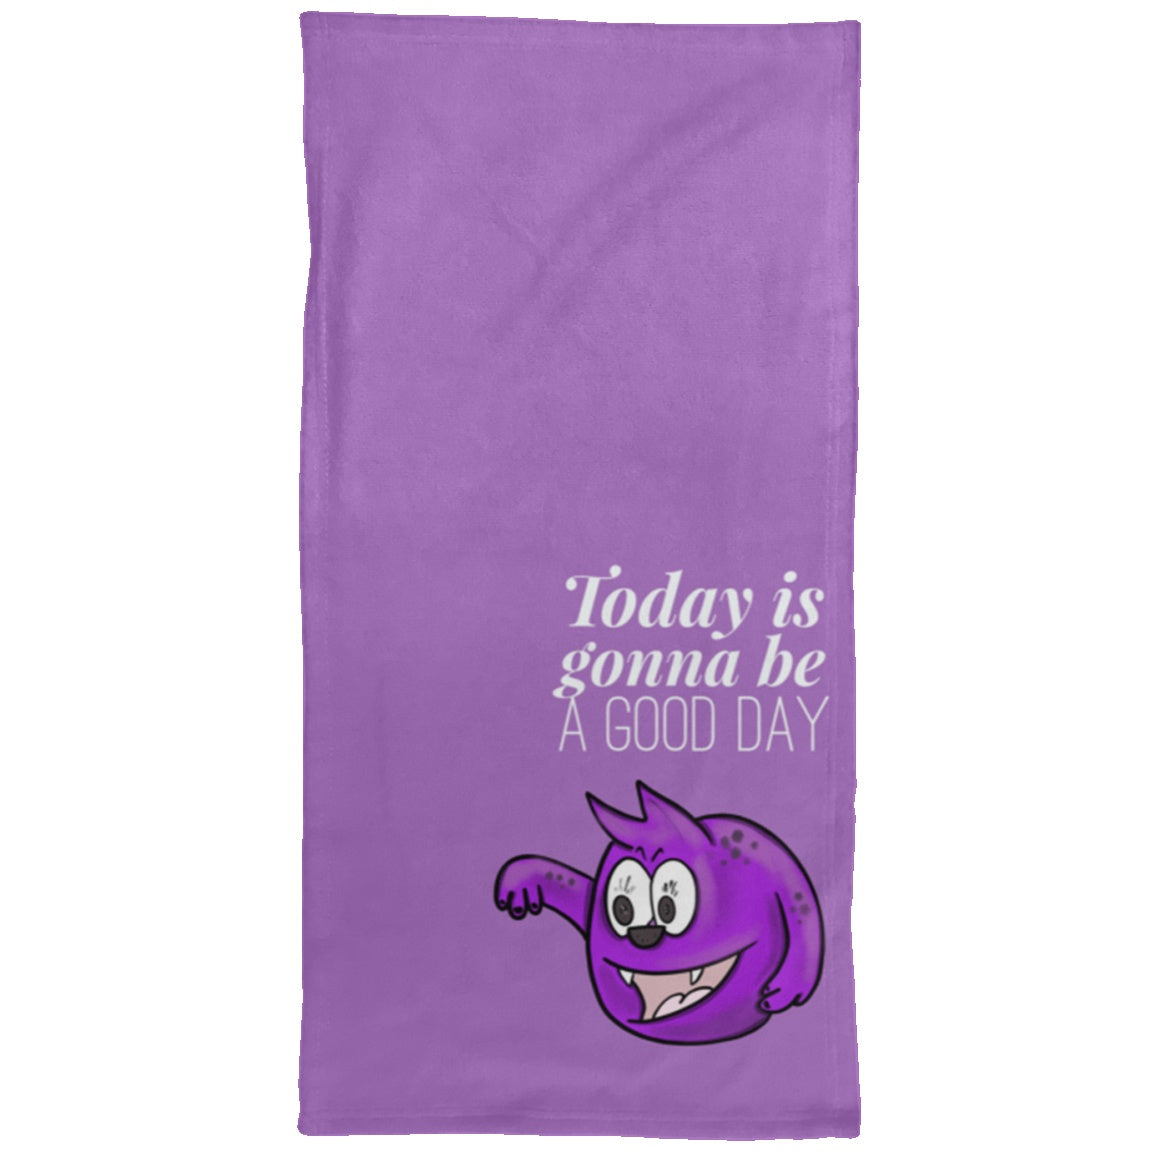 Good Day Chargimal Hand Towel - 15x30